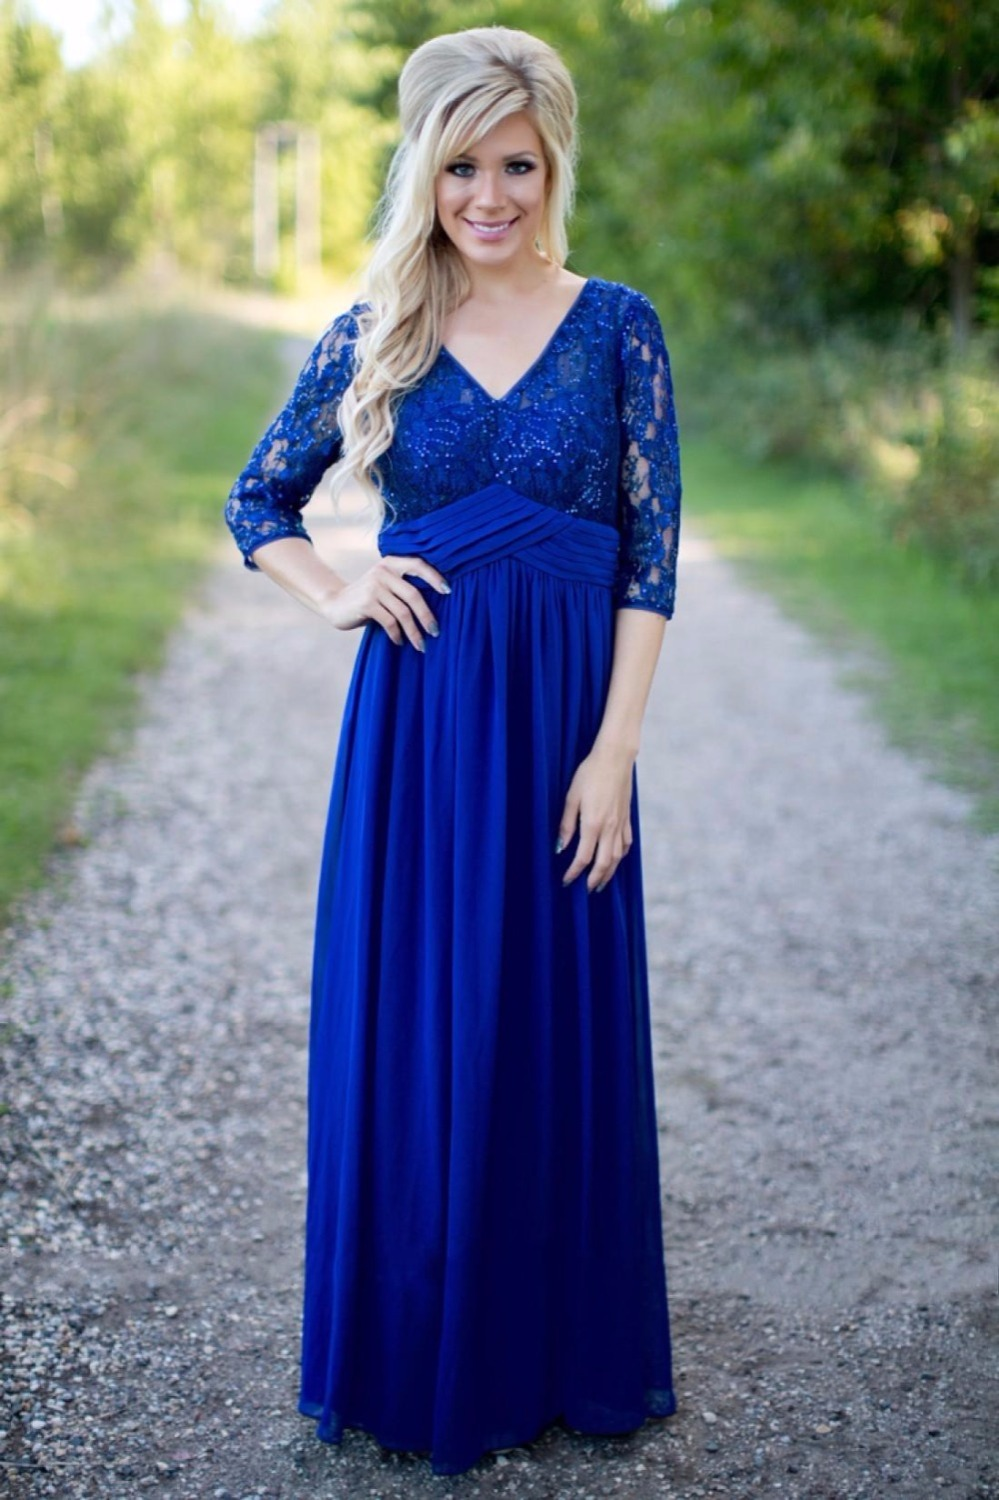 dad599bda5 Country Royal Blue Long Modest Bridesmaid Dresses With Sleeves V Neck Lace  Top Chiffon Skirt Rustic Formal Bridesmaid Robes New